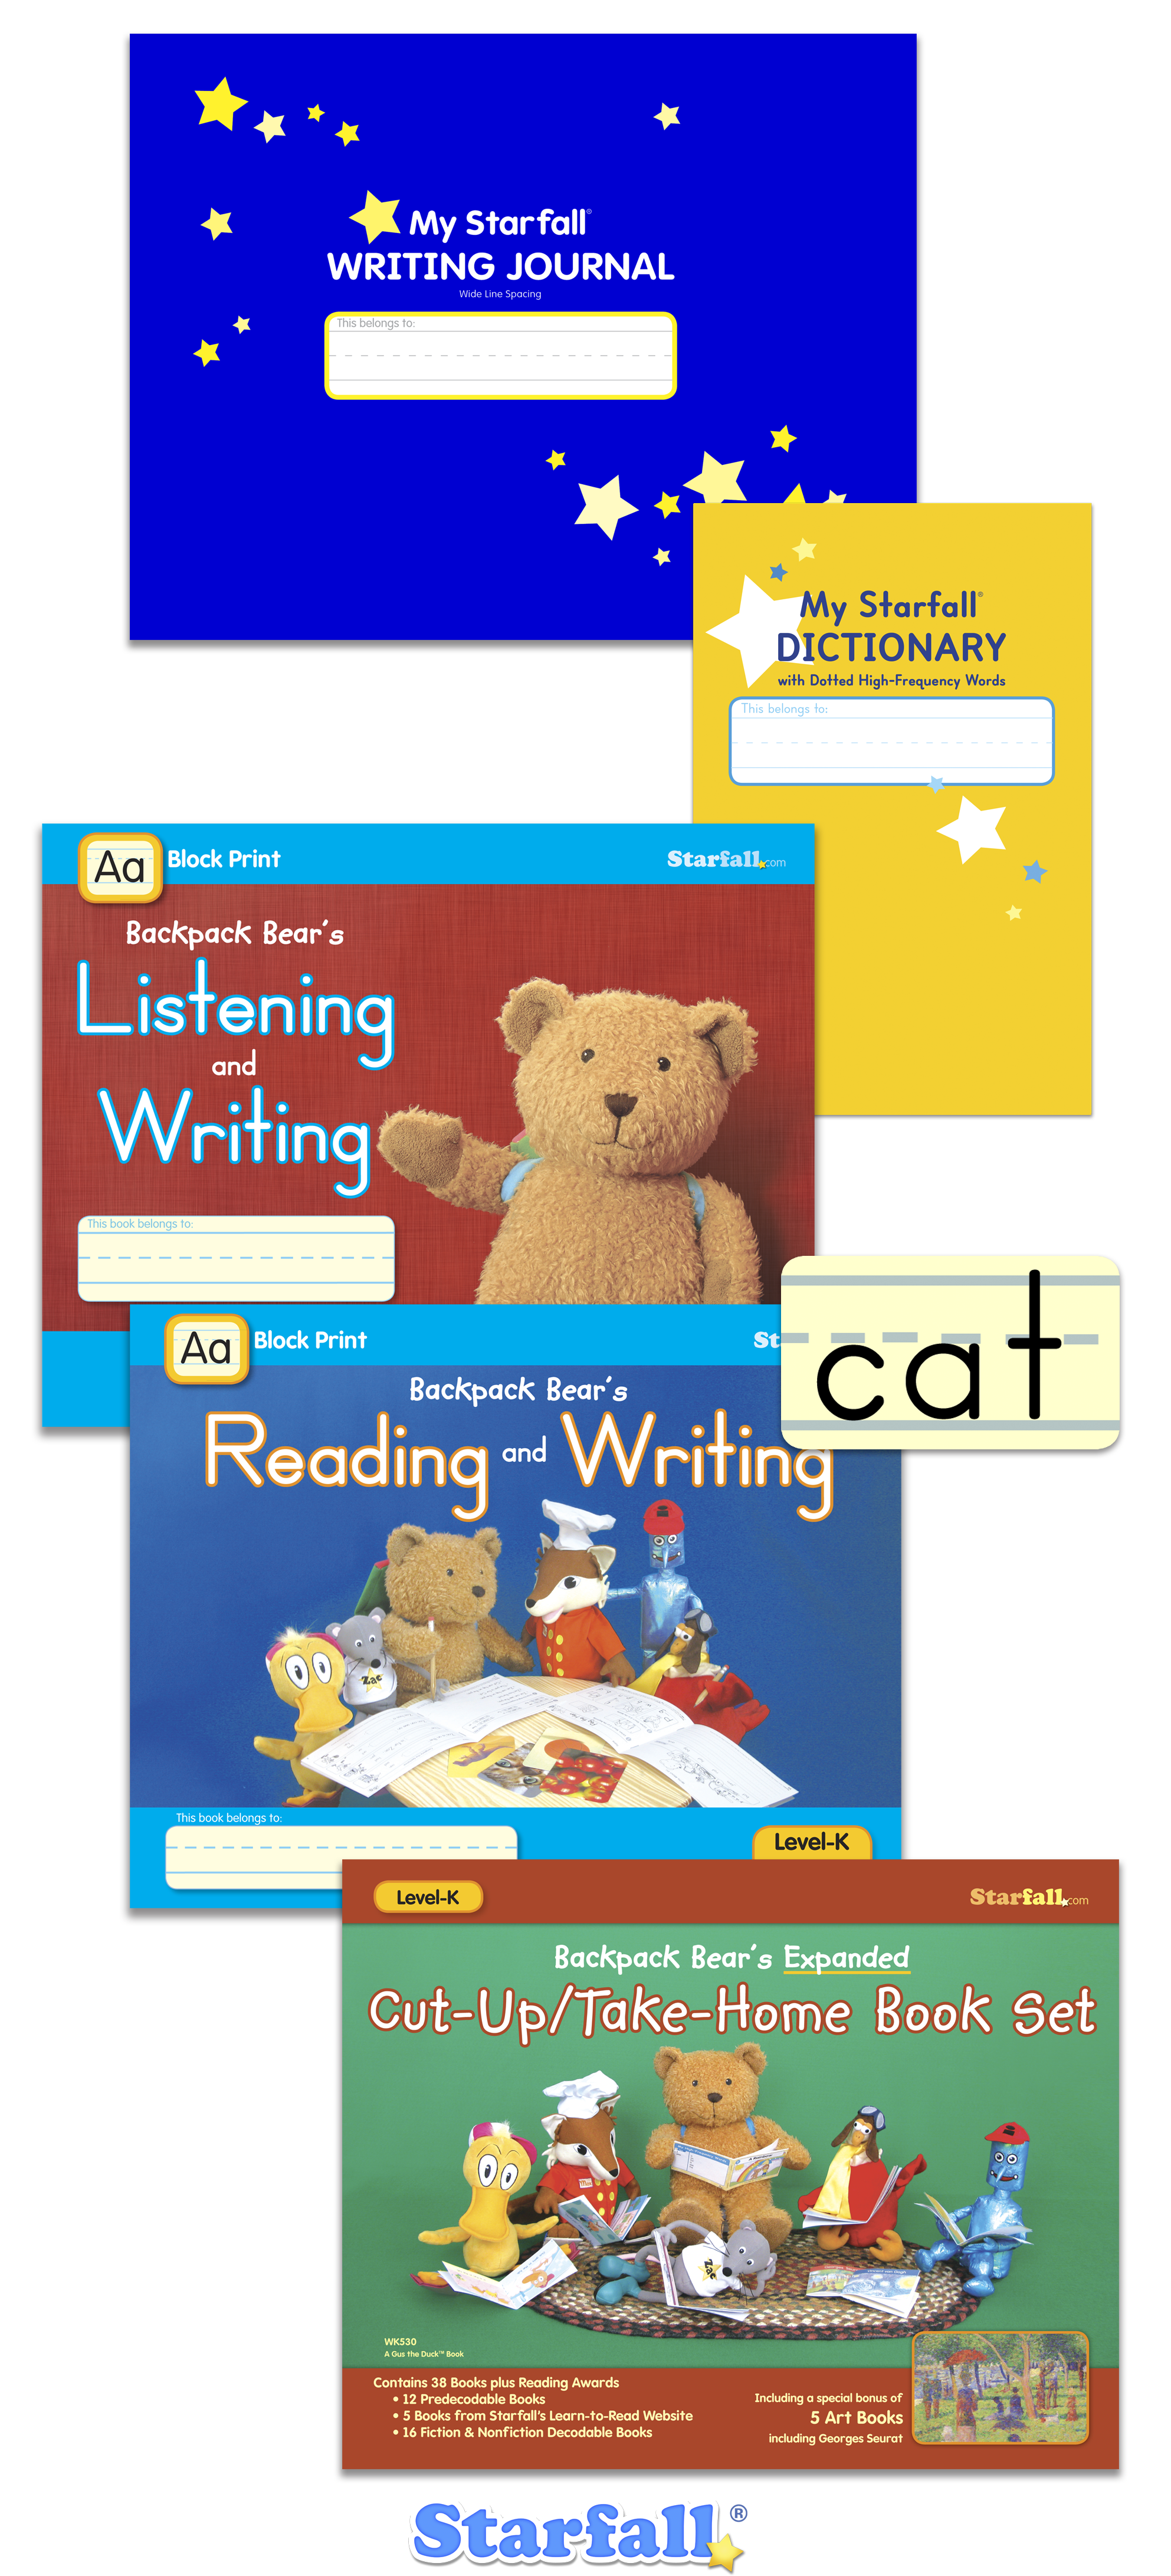 Check out this set of 5 practice books from Starfall! Only